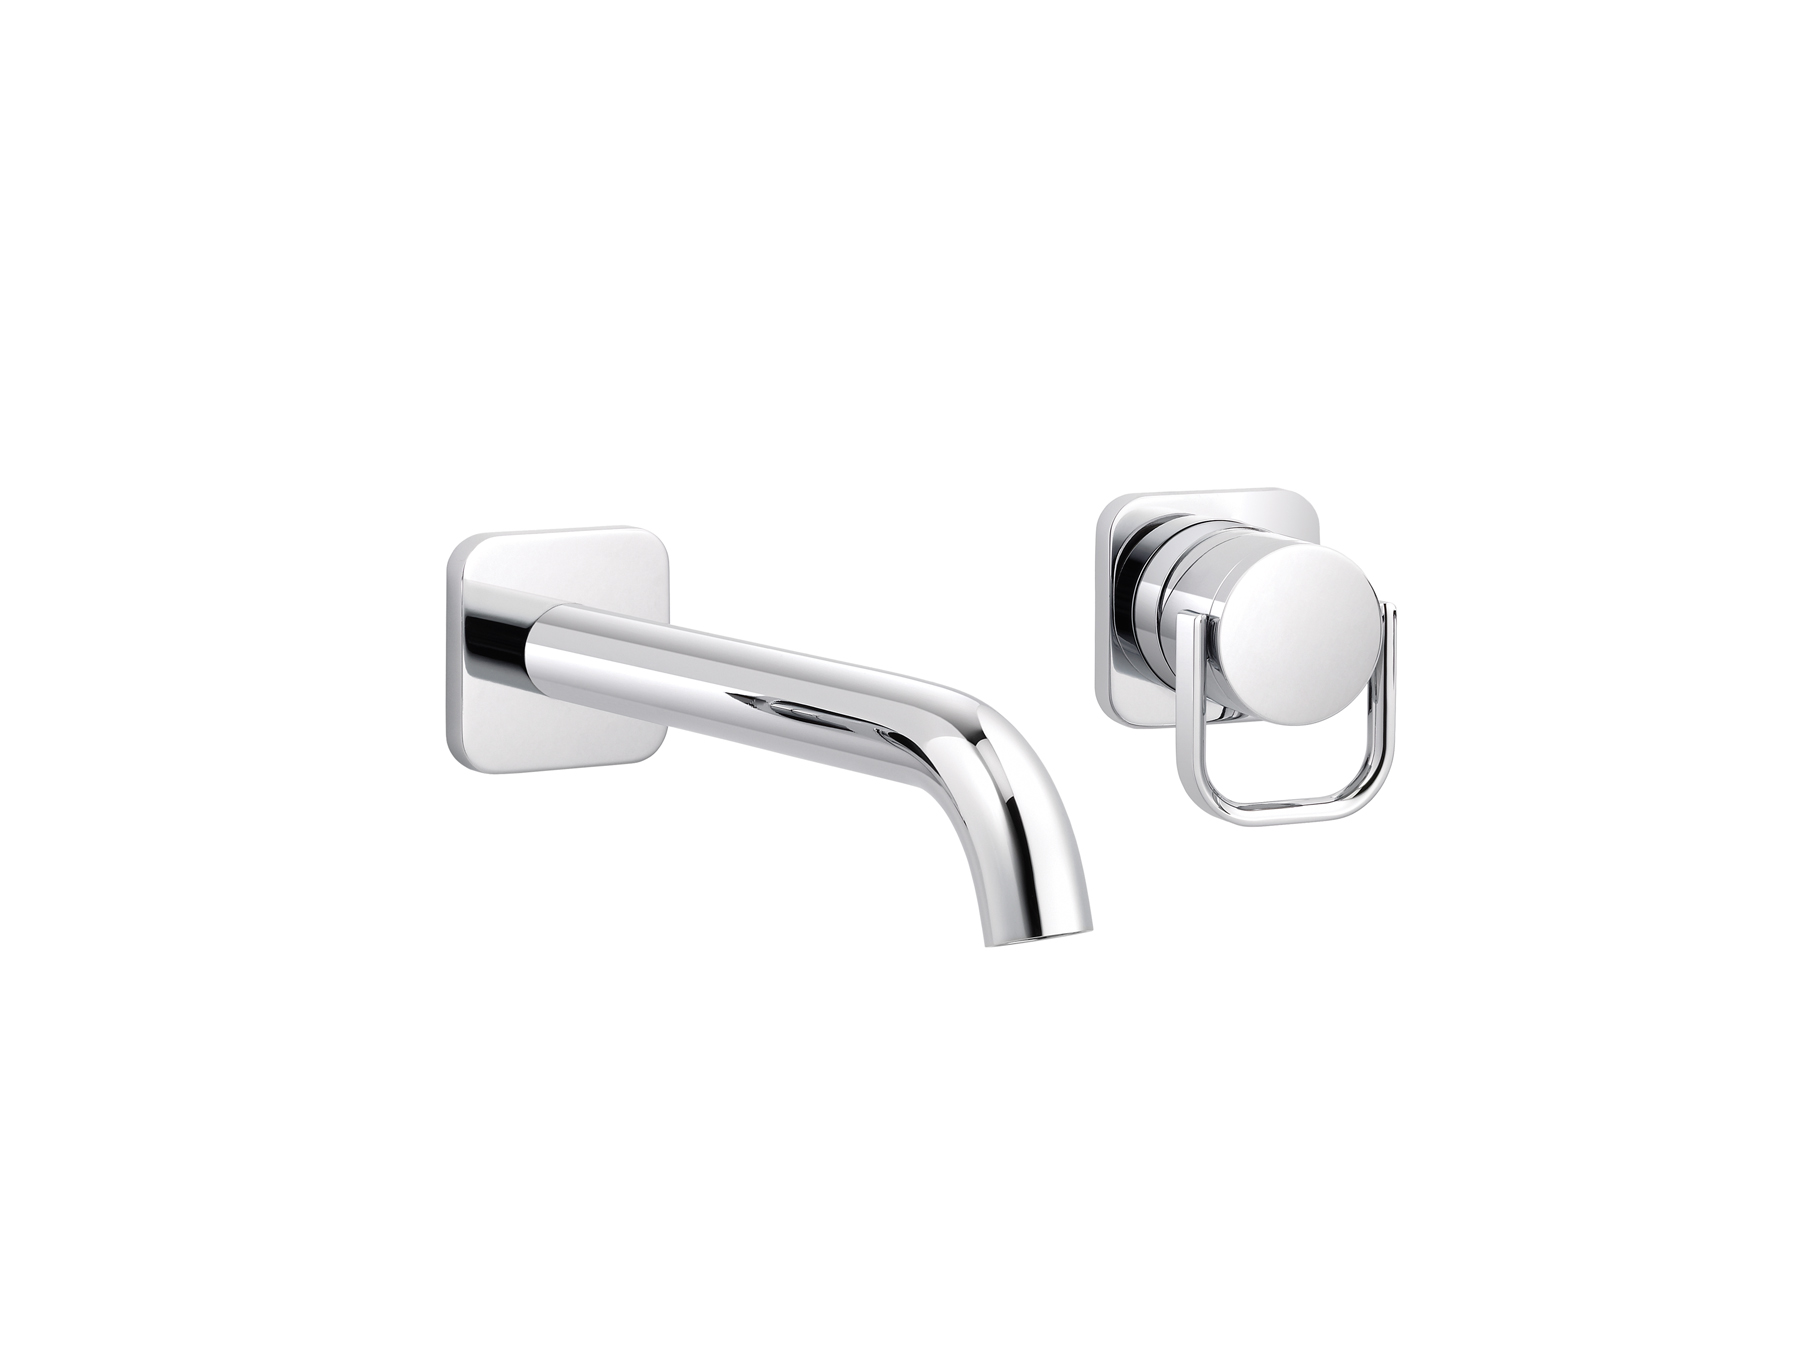 Concealed single-lever washbasin mixer 4541.--.50